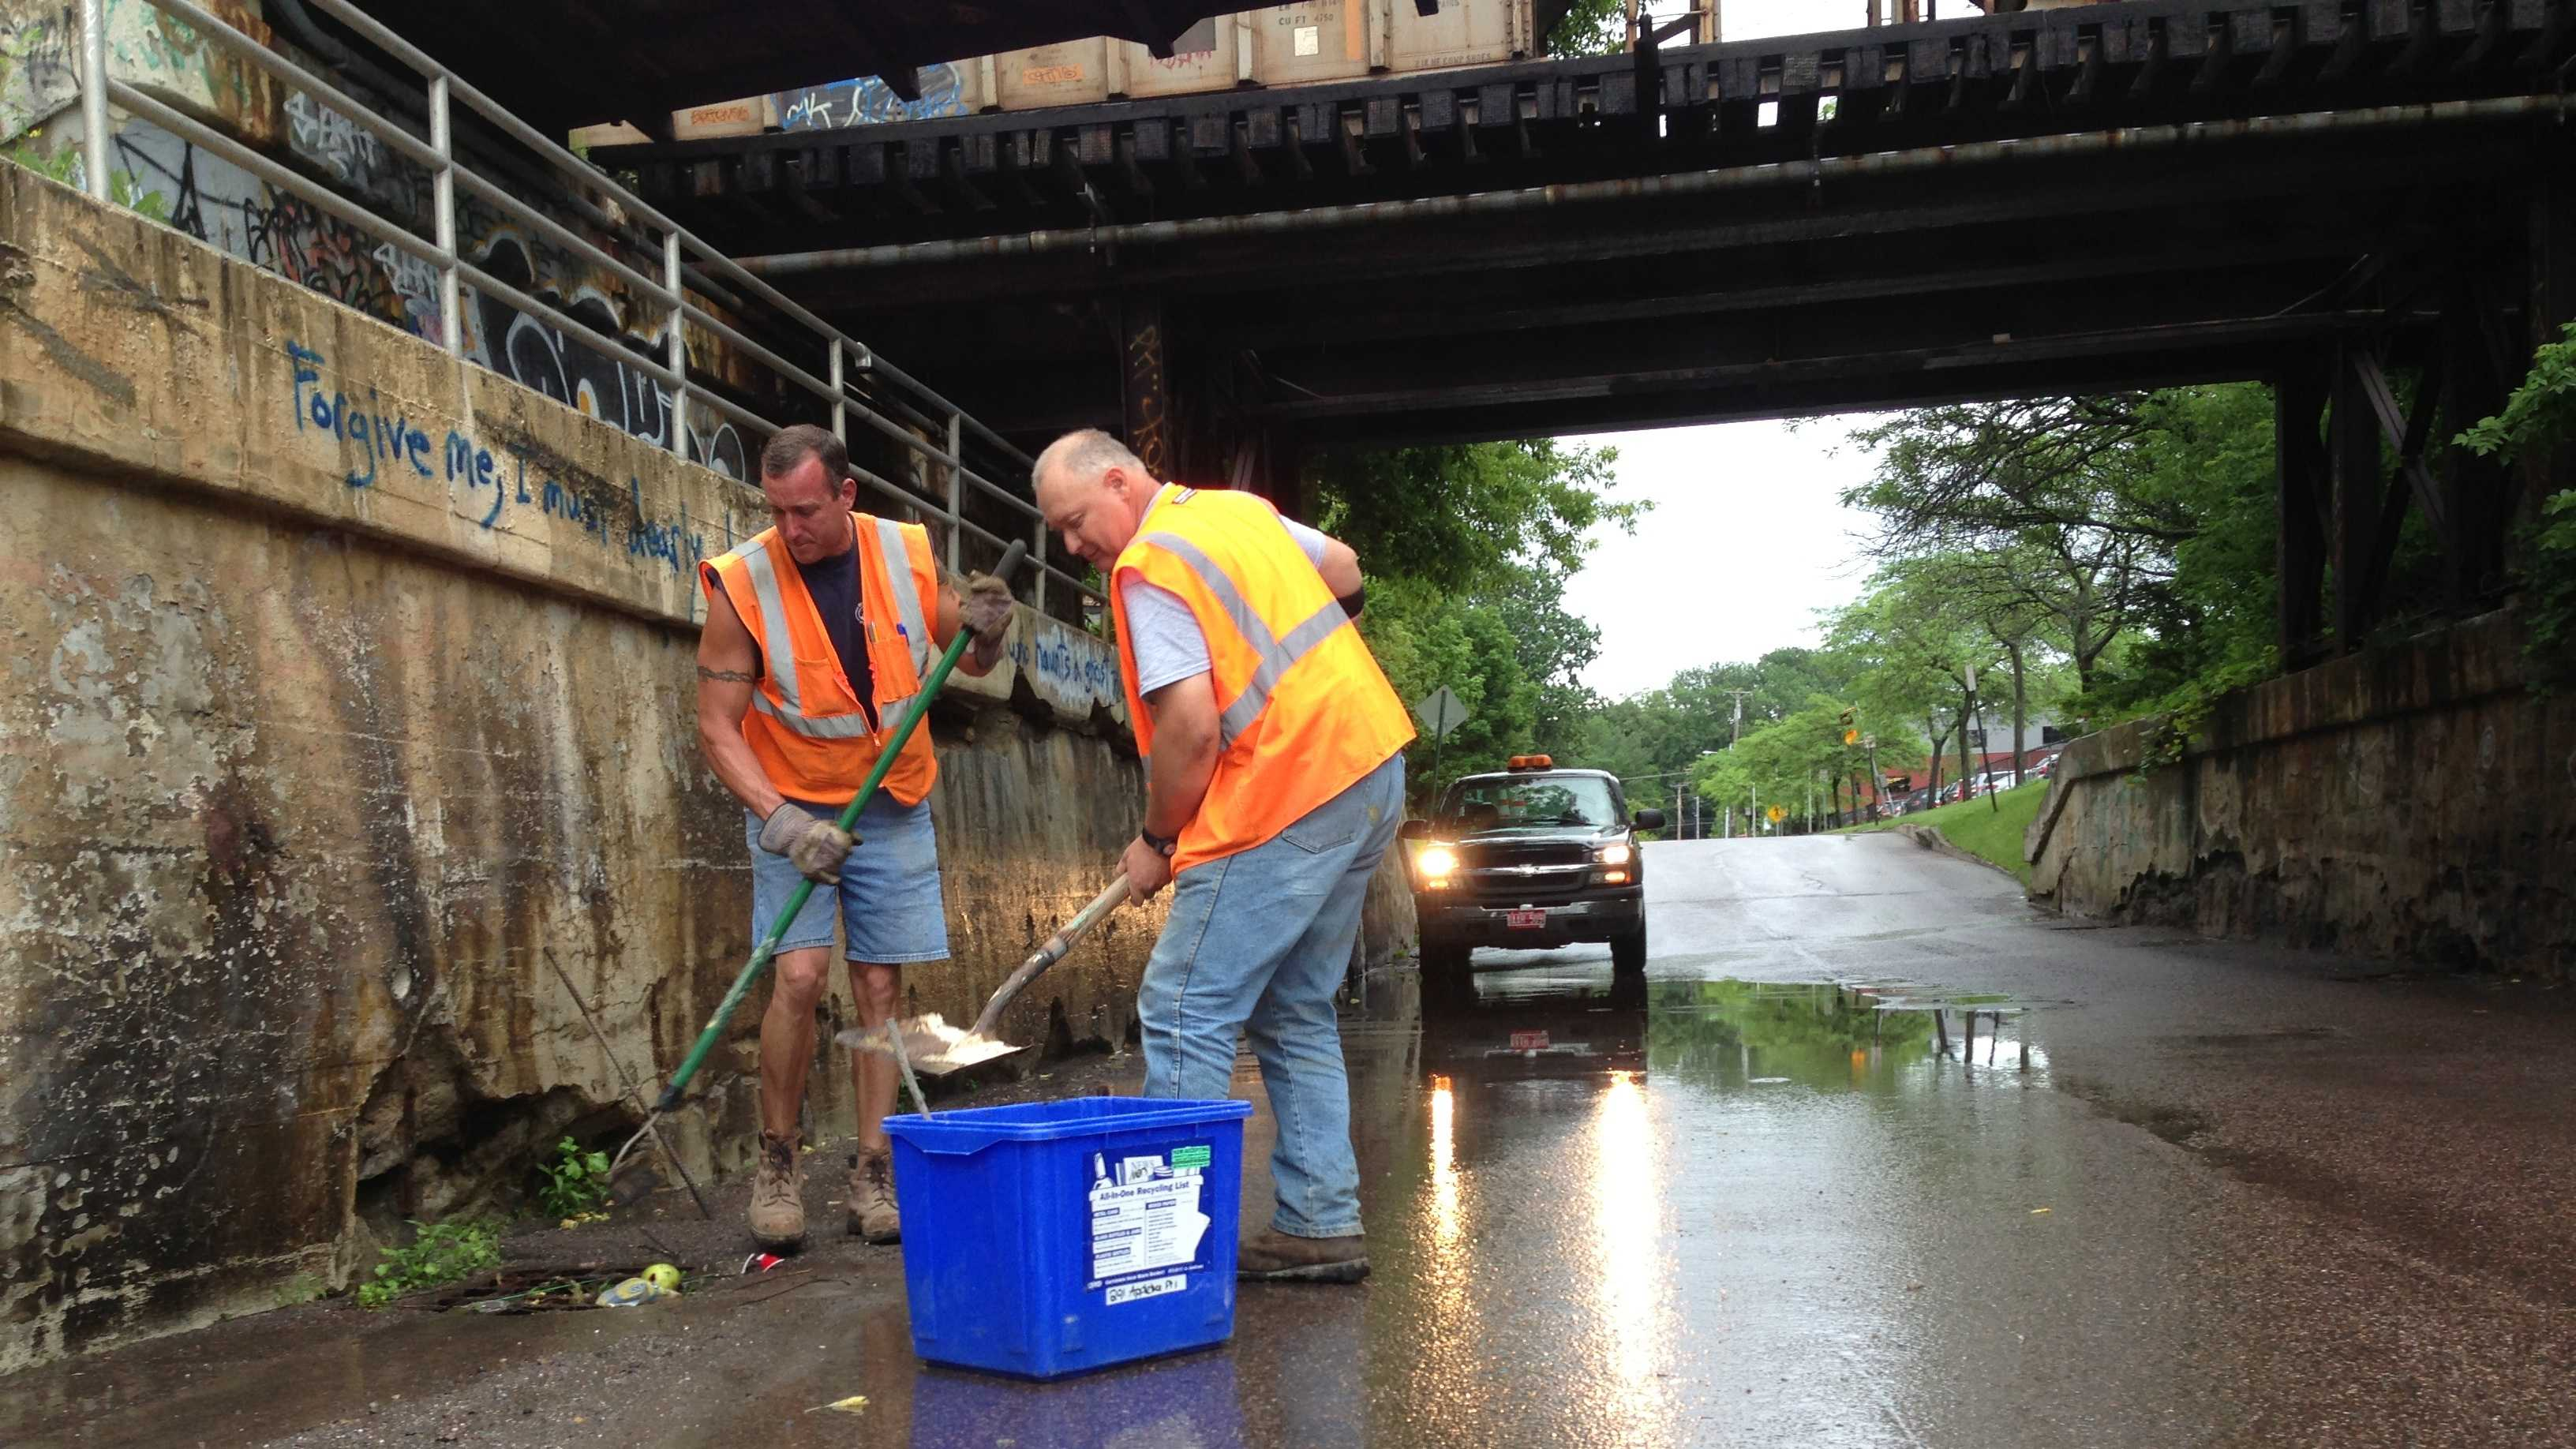 Burlington DPW employees clean batch basins of debris on Lakeside Avenue Friday, anticipating further weekend storms.